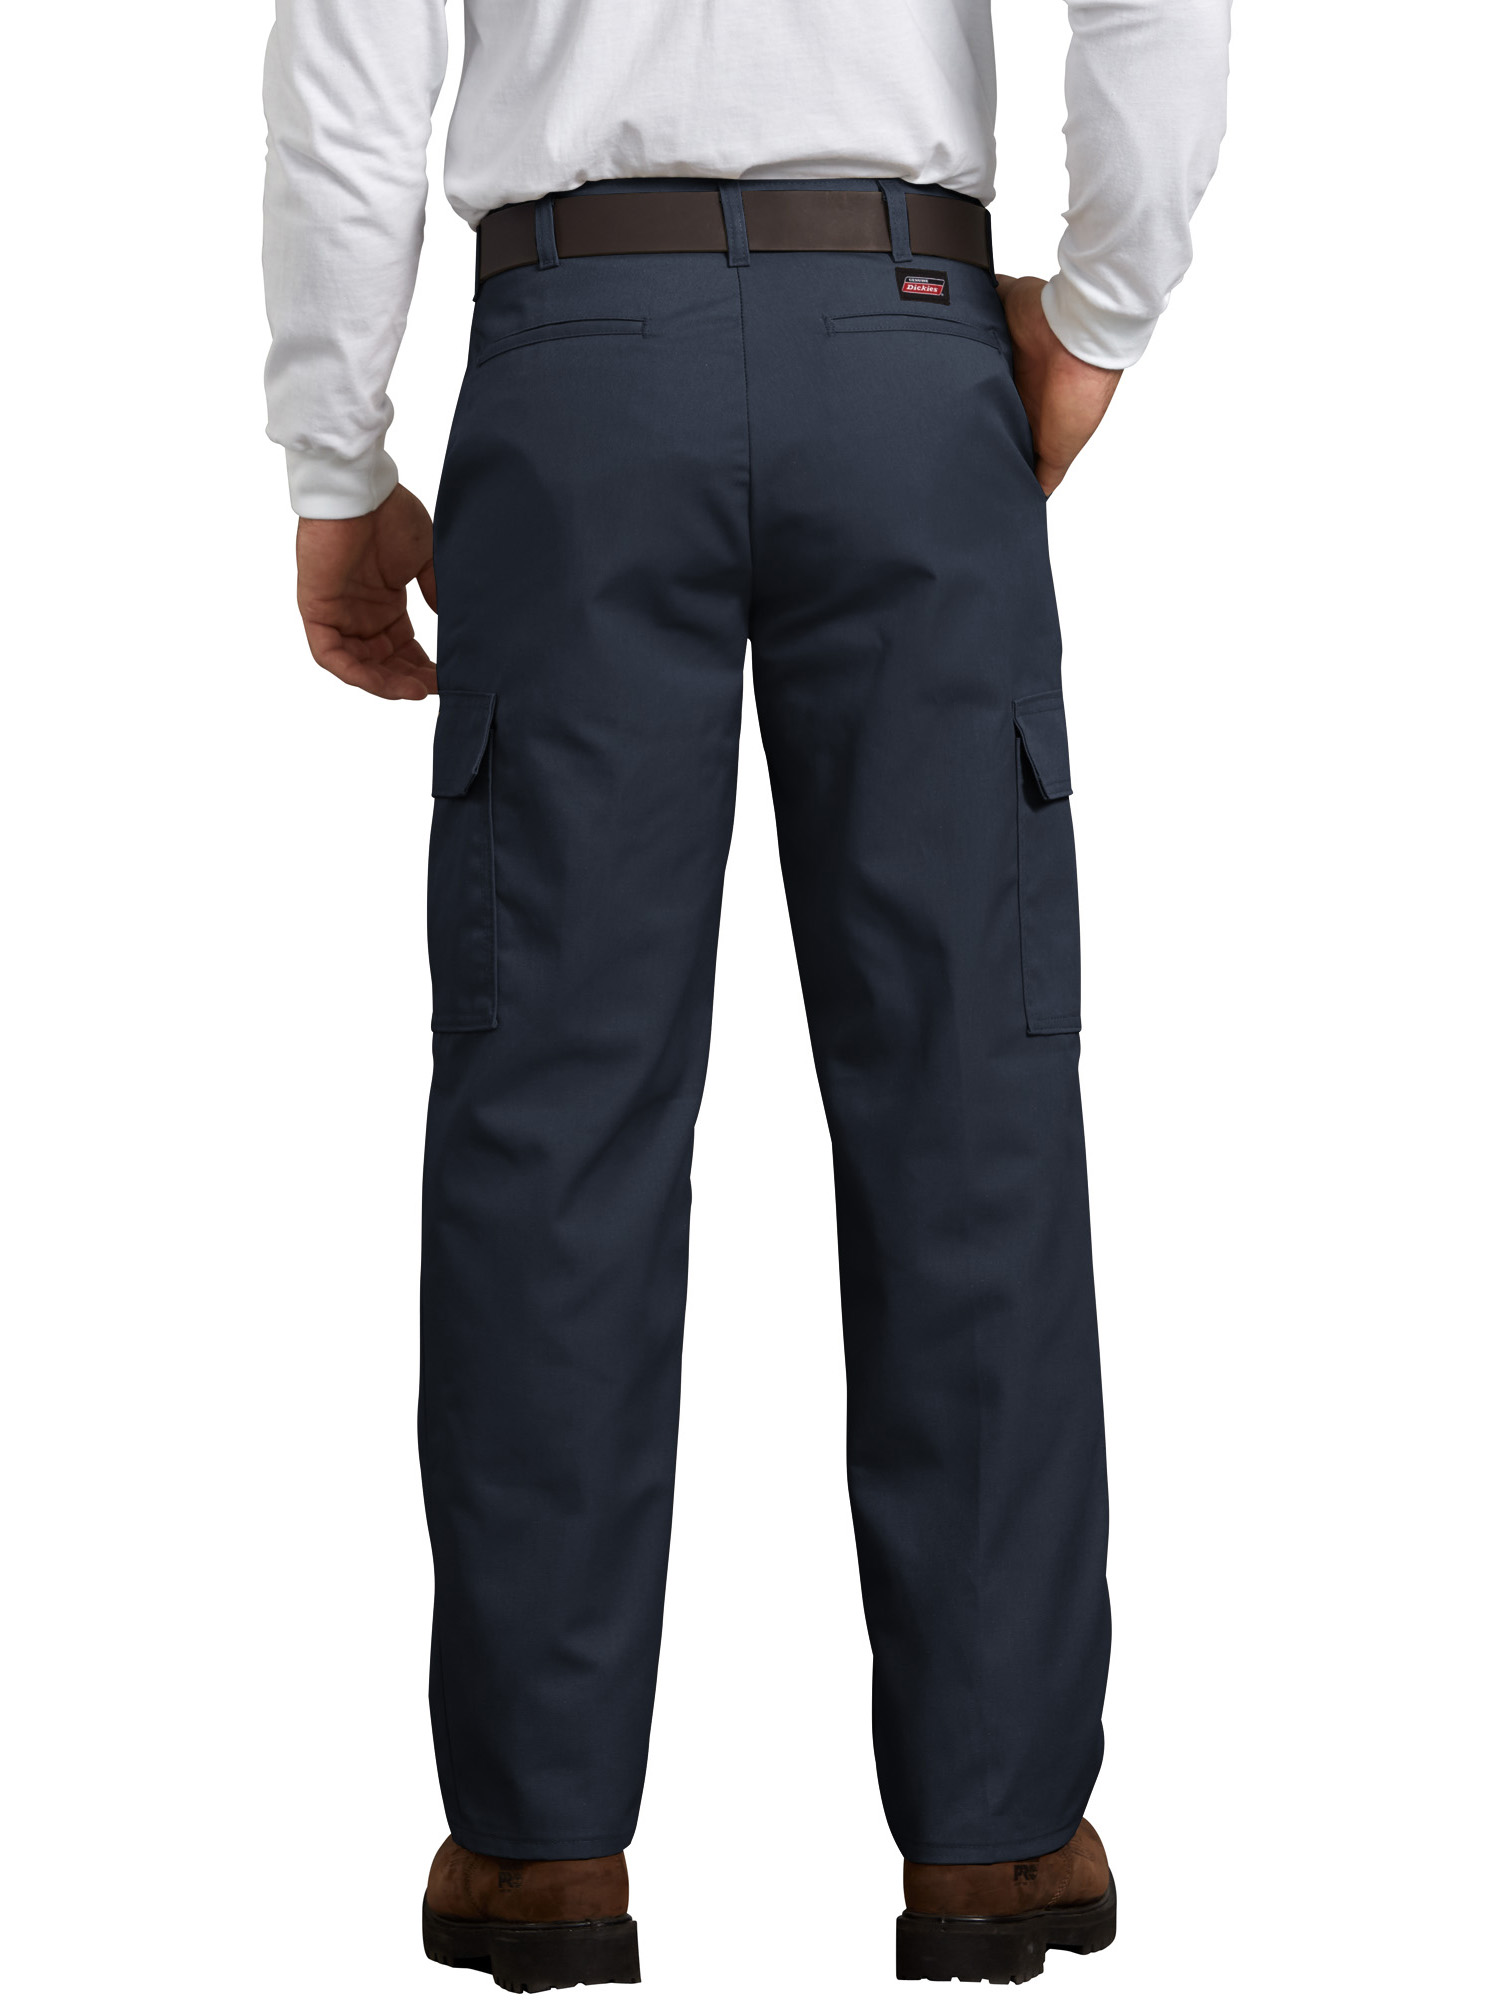 4087ecba241 Men's Relaxed Fit Flat Front Cargo Pant